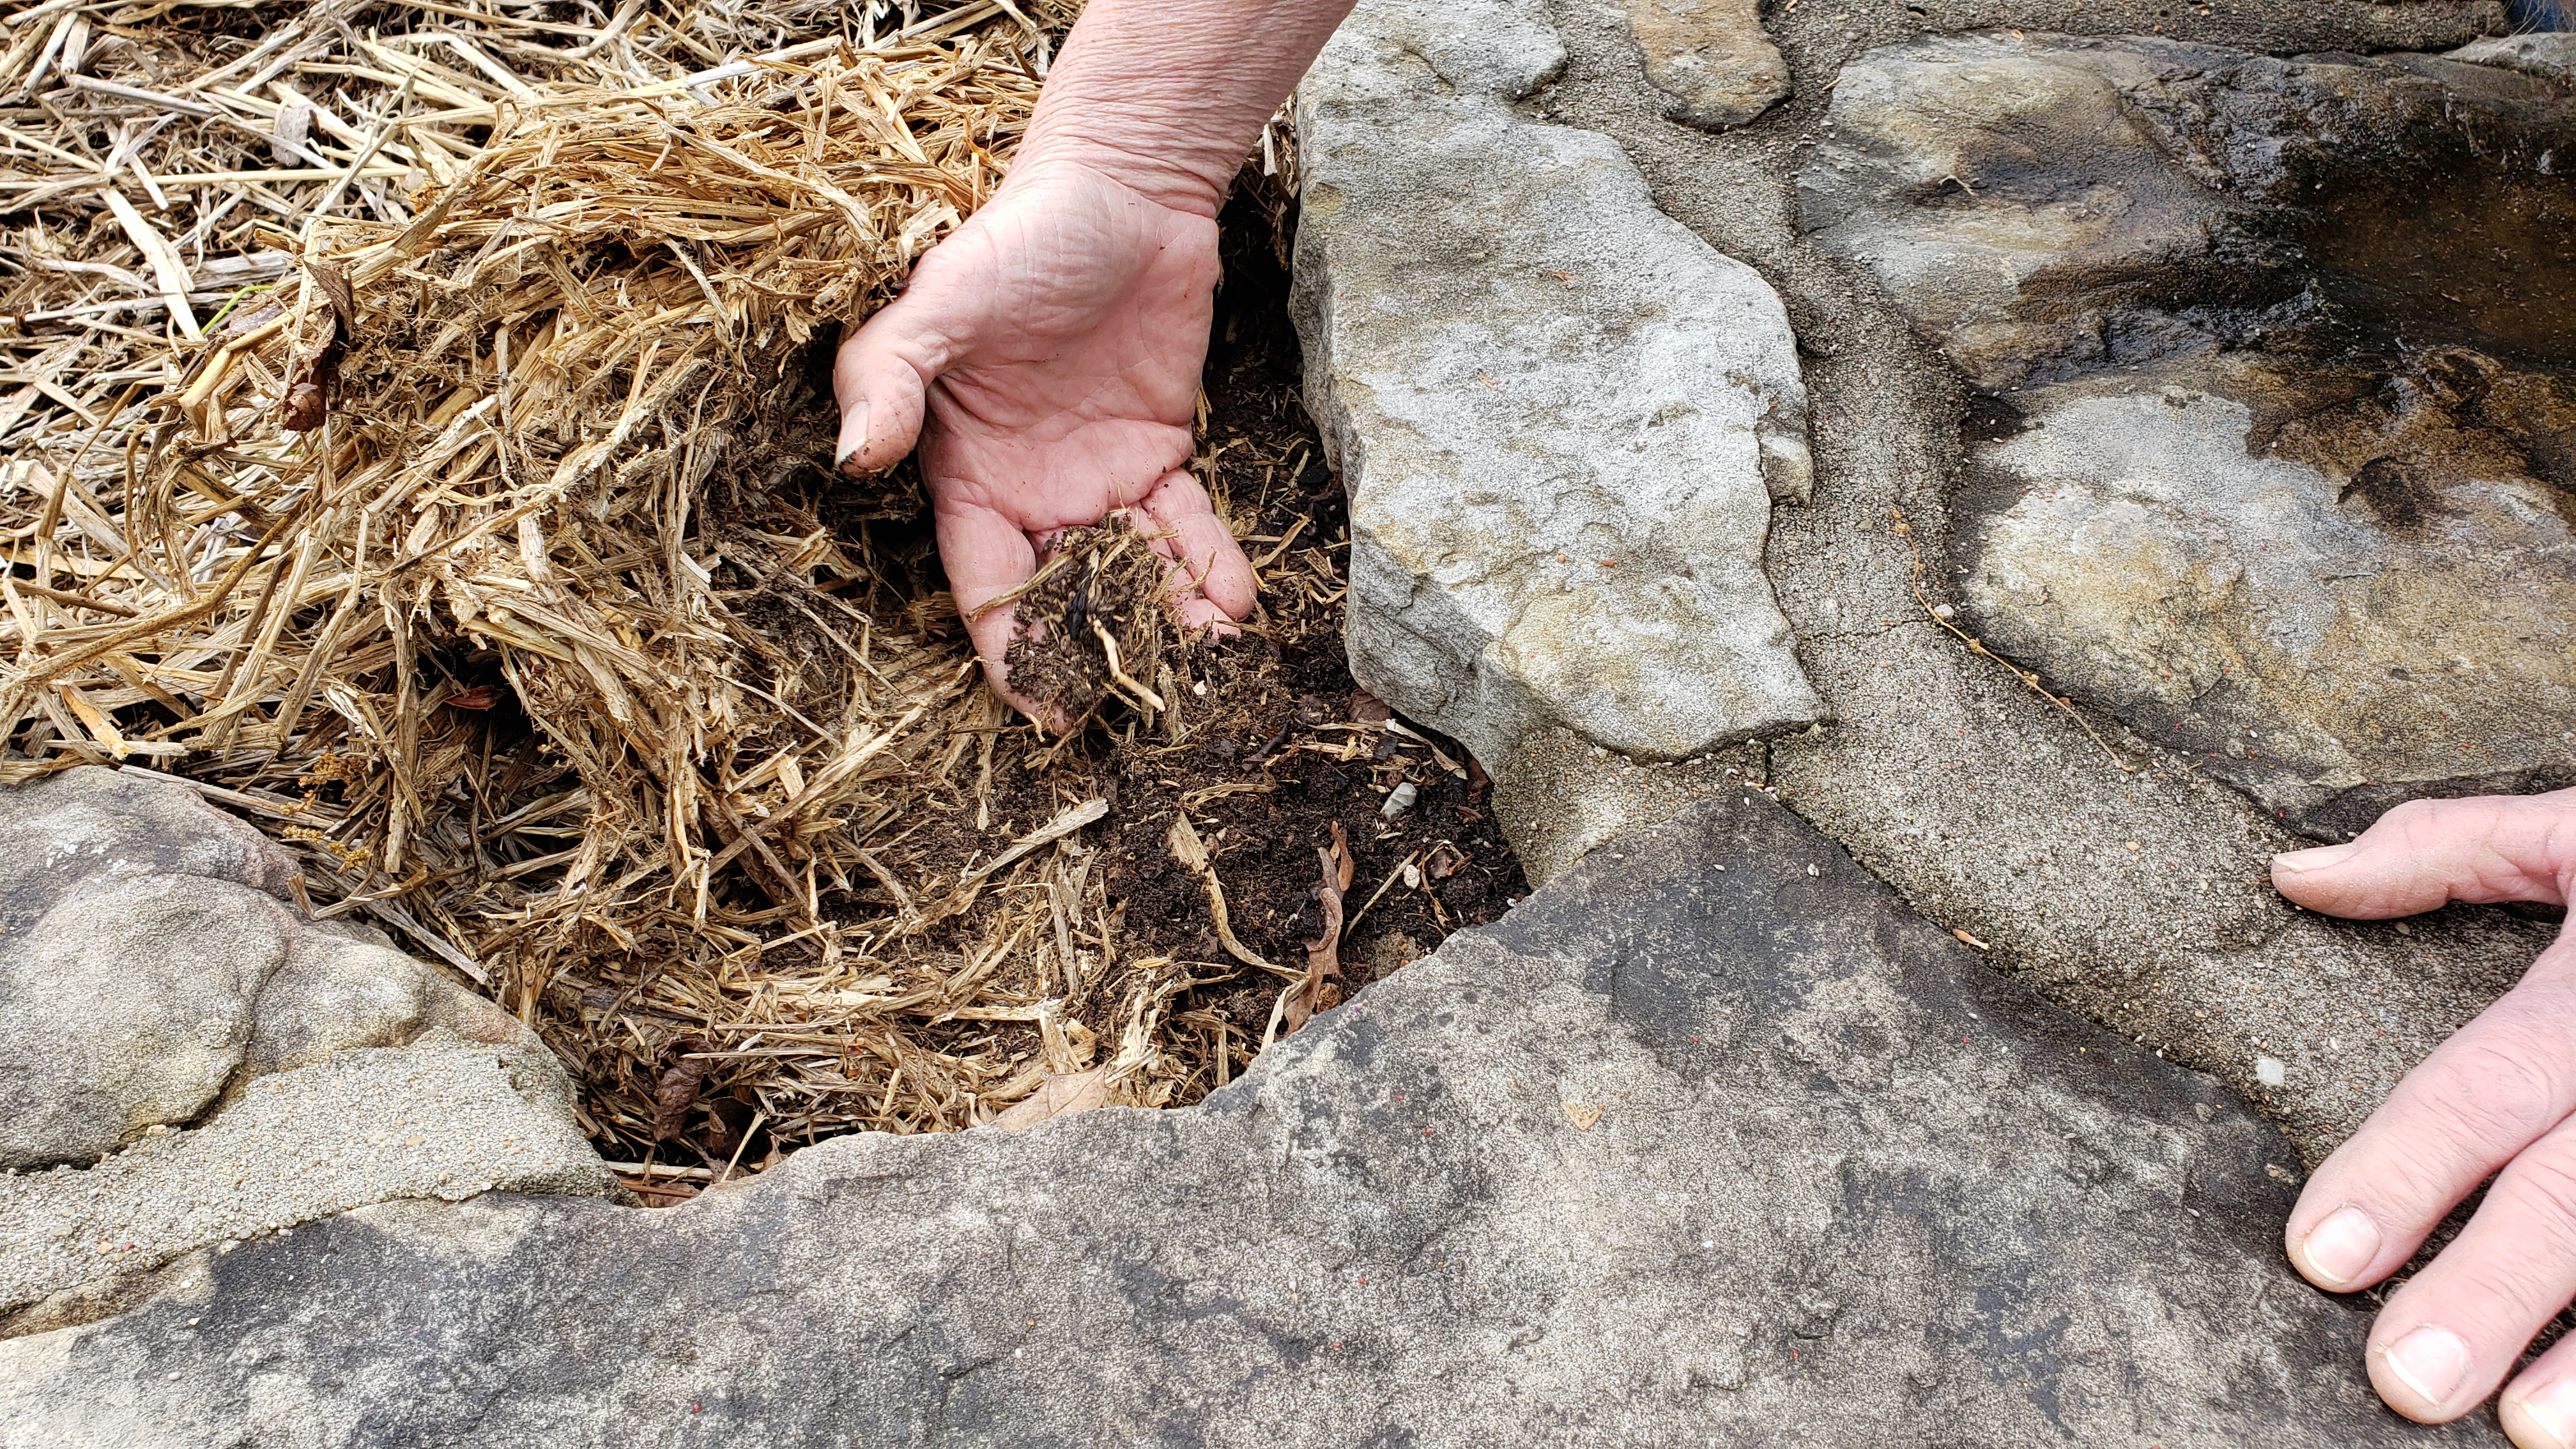 Gardener with hand in straw mulch showing break down into organic matter